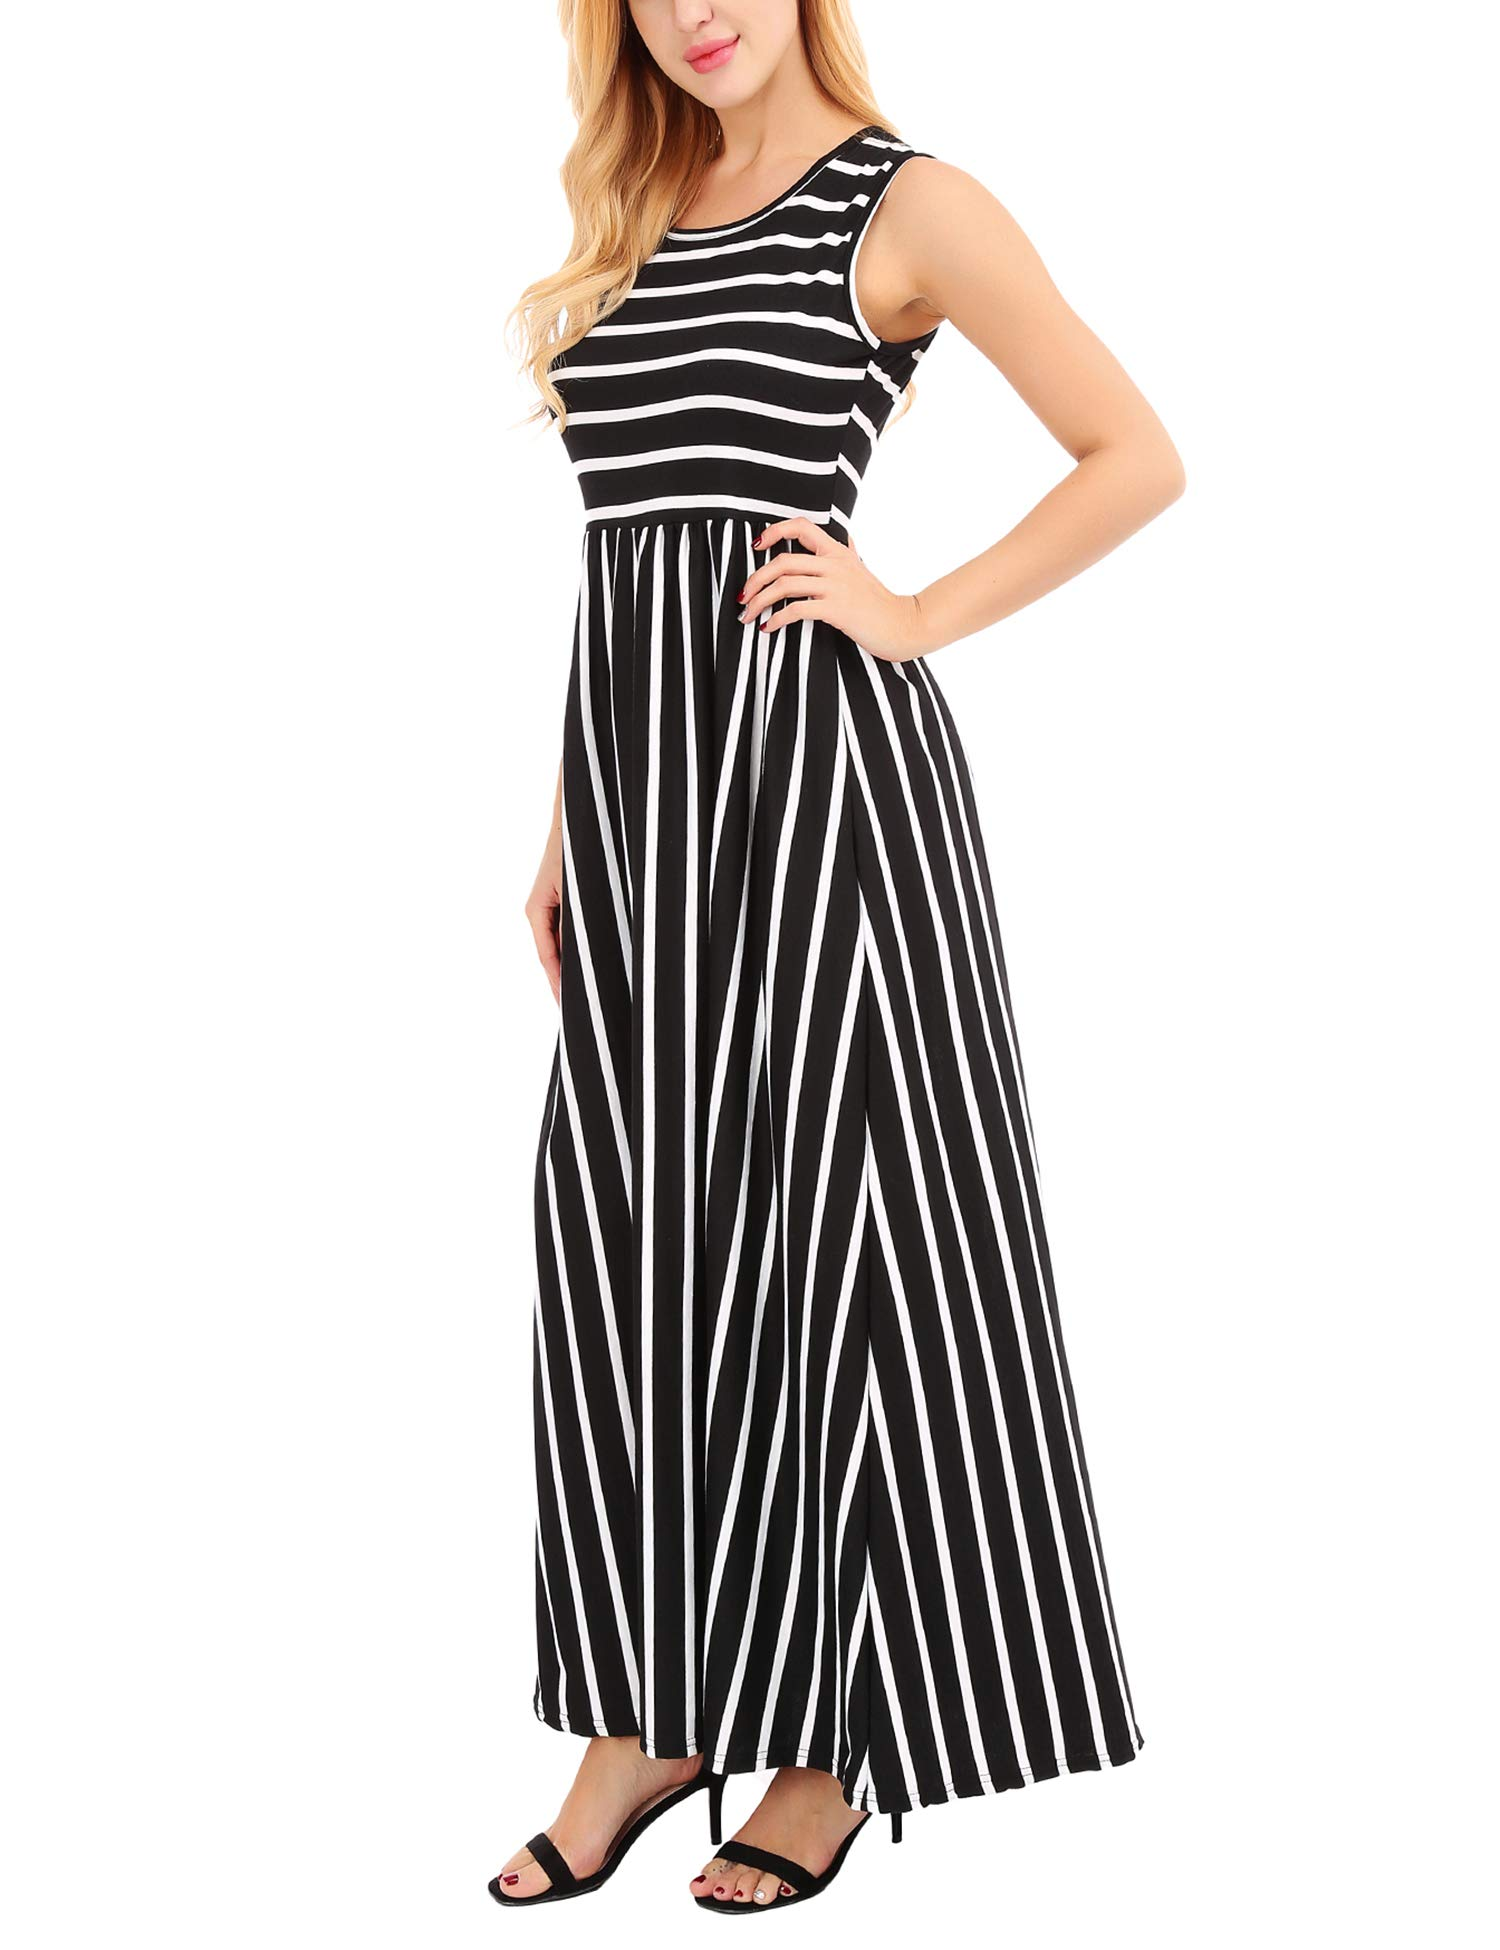 478ddb36b36 FISOUL Women s Summer Striped Print Dress Tank Long Maxi Dresses for Women  Black M